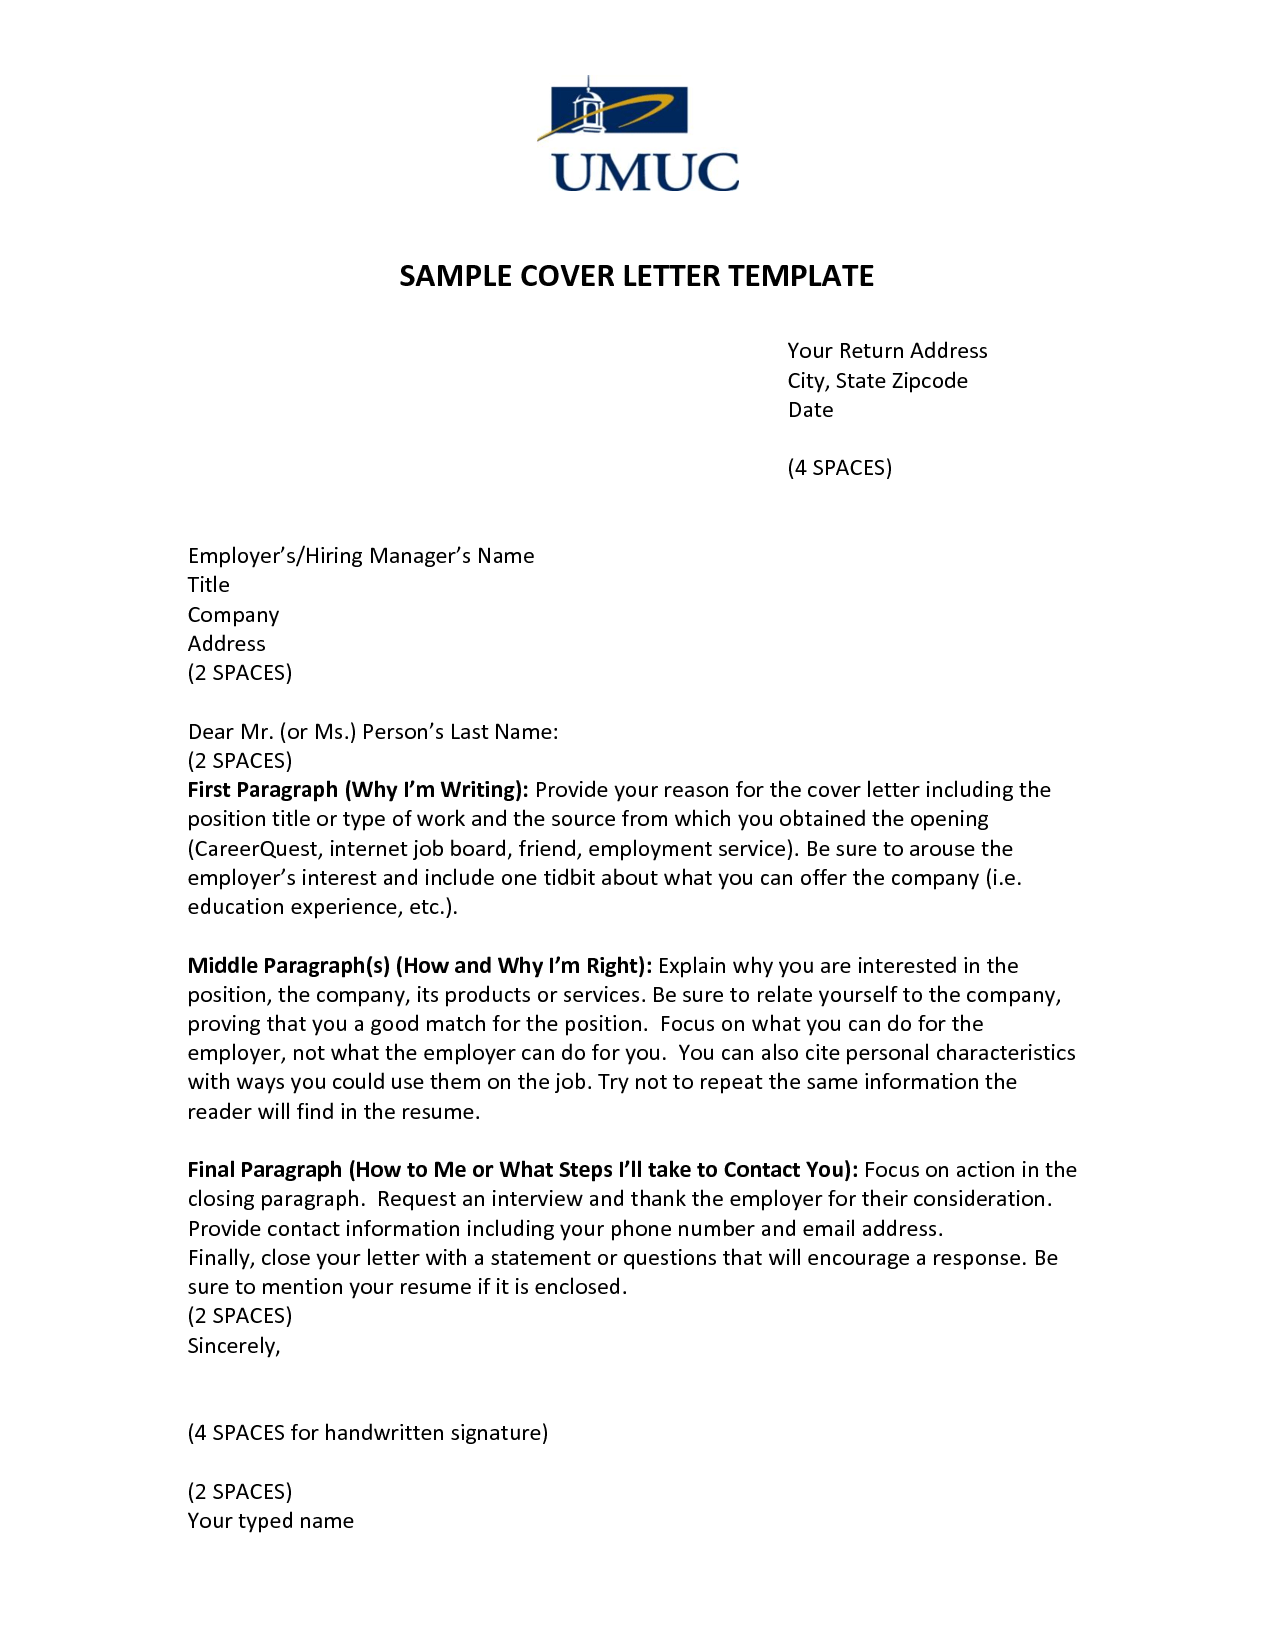 Cover Letter Template For Unsolicited Resume - Resume Examples